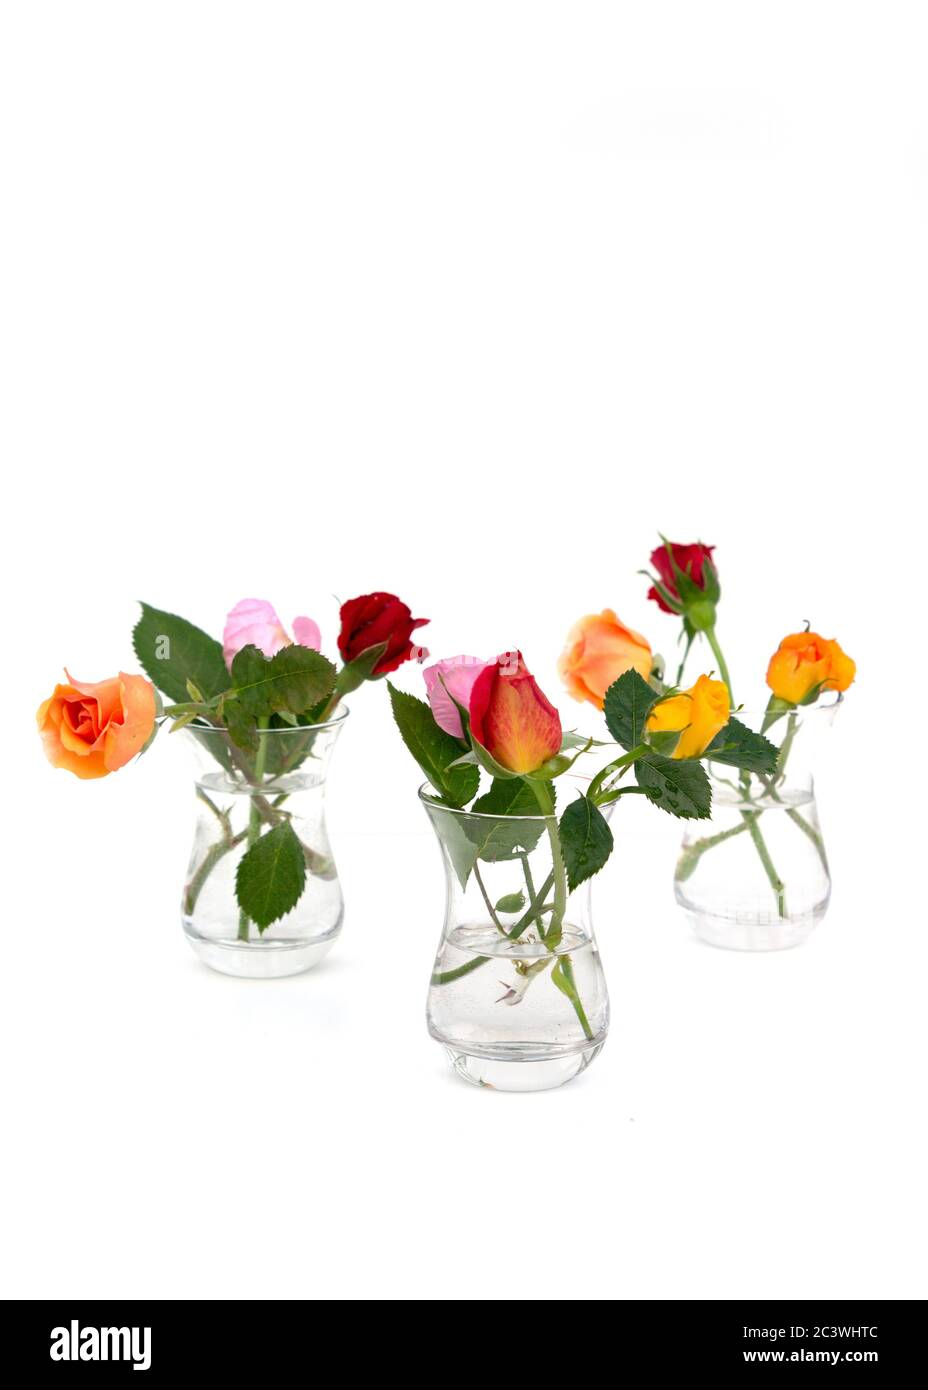 Minimalist Composition Of Multicolored Roses In Glass Vases On White Background Holiday Greeting Card Copy Space Stock Photo Alamy